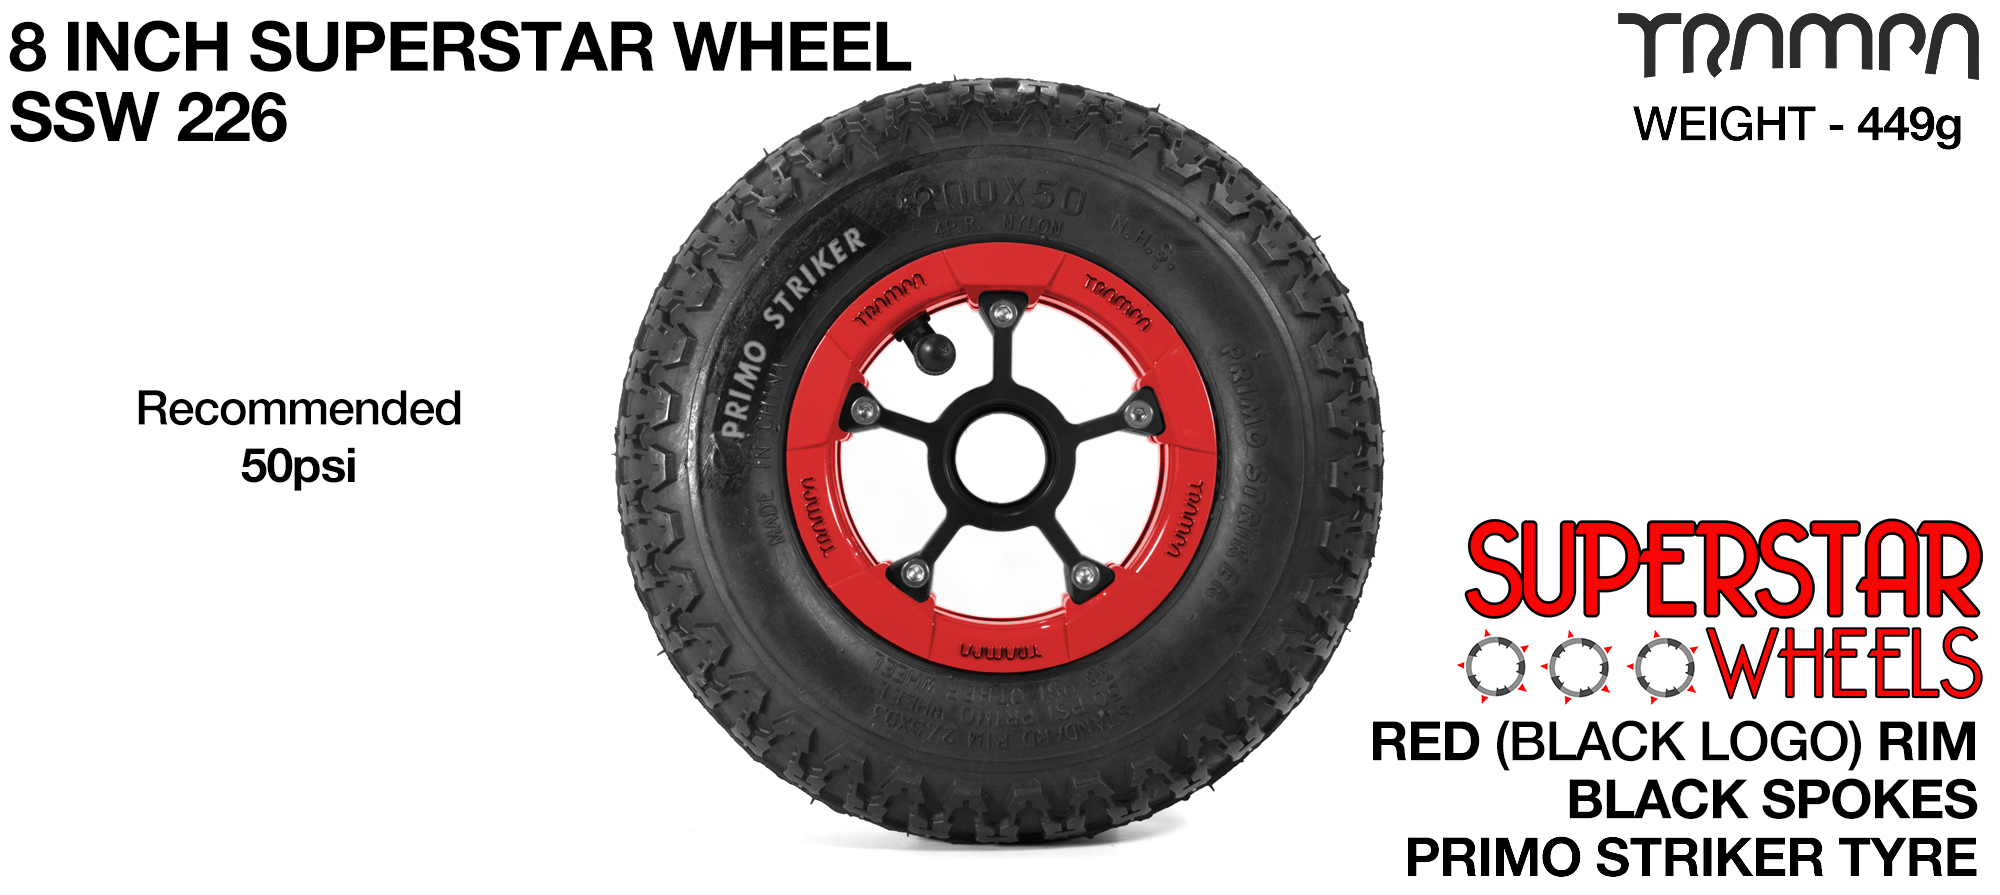 Superstar 8 Inch Wheel - Red Superstar Rim Black Anodised Spokes & Primo Striker 8 Inch Tyre